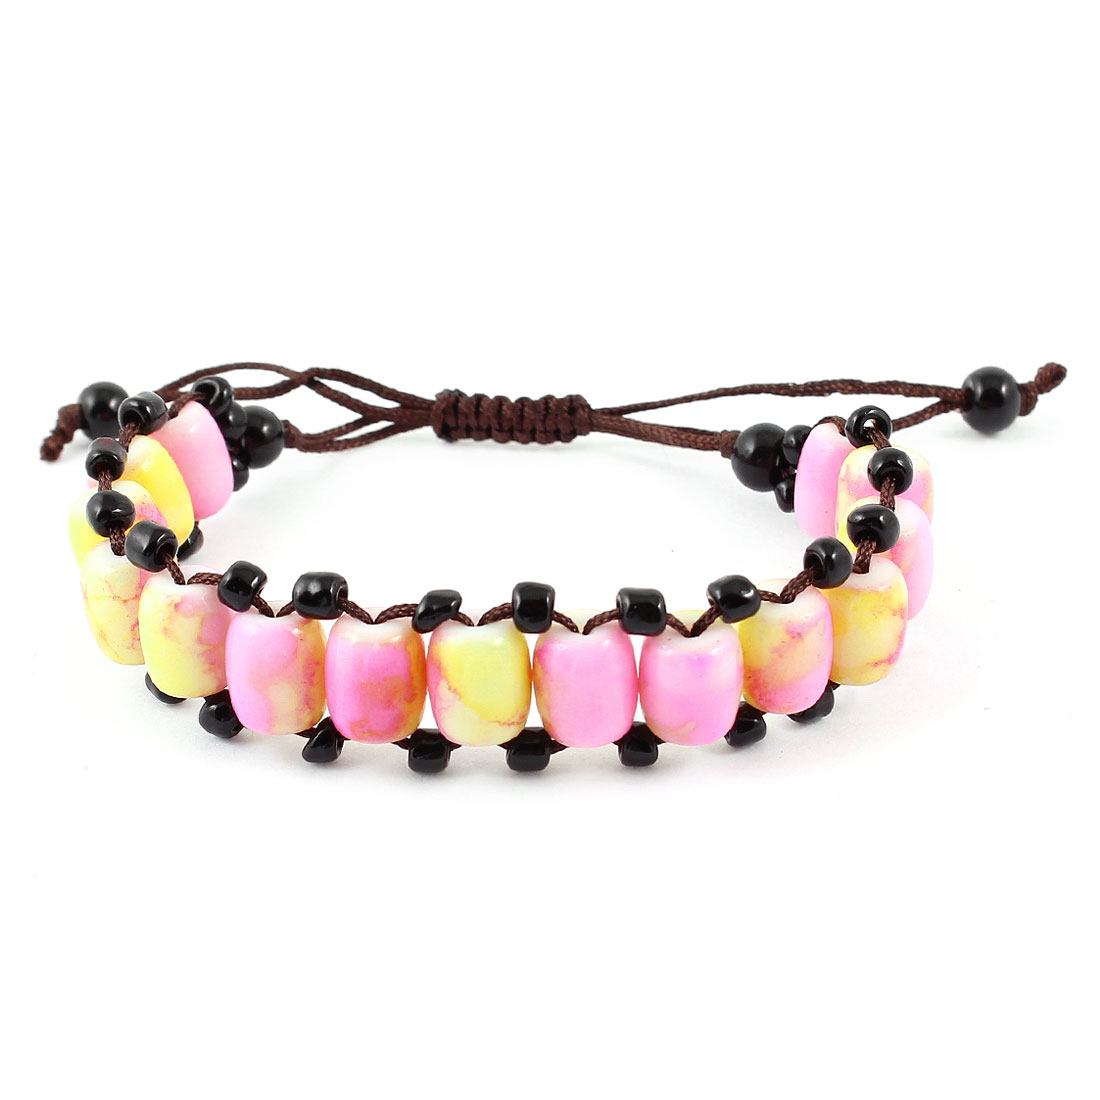 Lady Handmade Nylon Rope Pink Yellow Plastic Beads Decor Pull String Wrist Bracelet